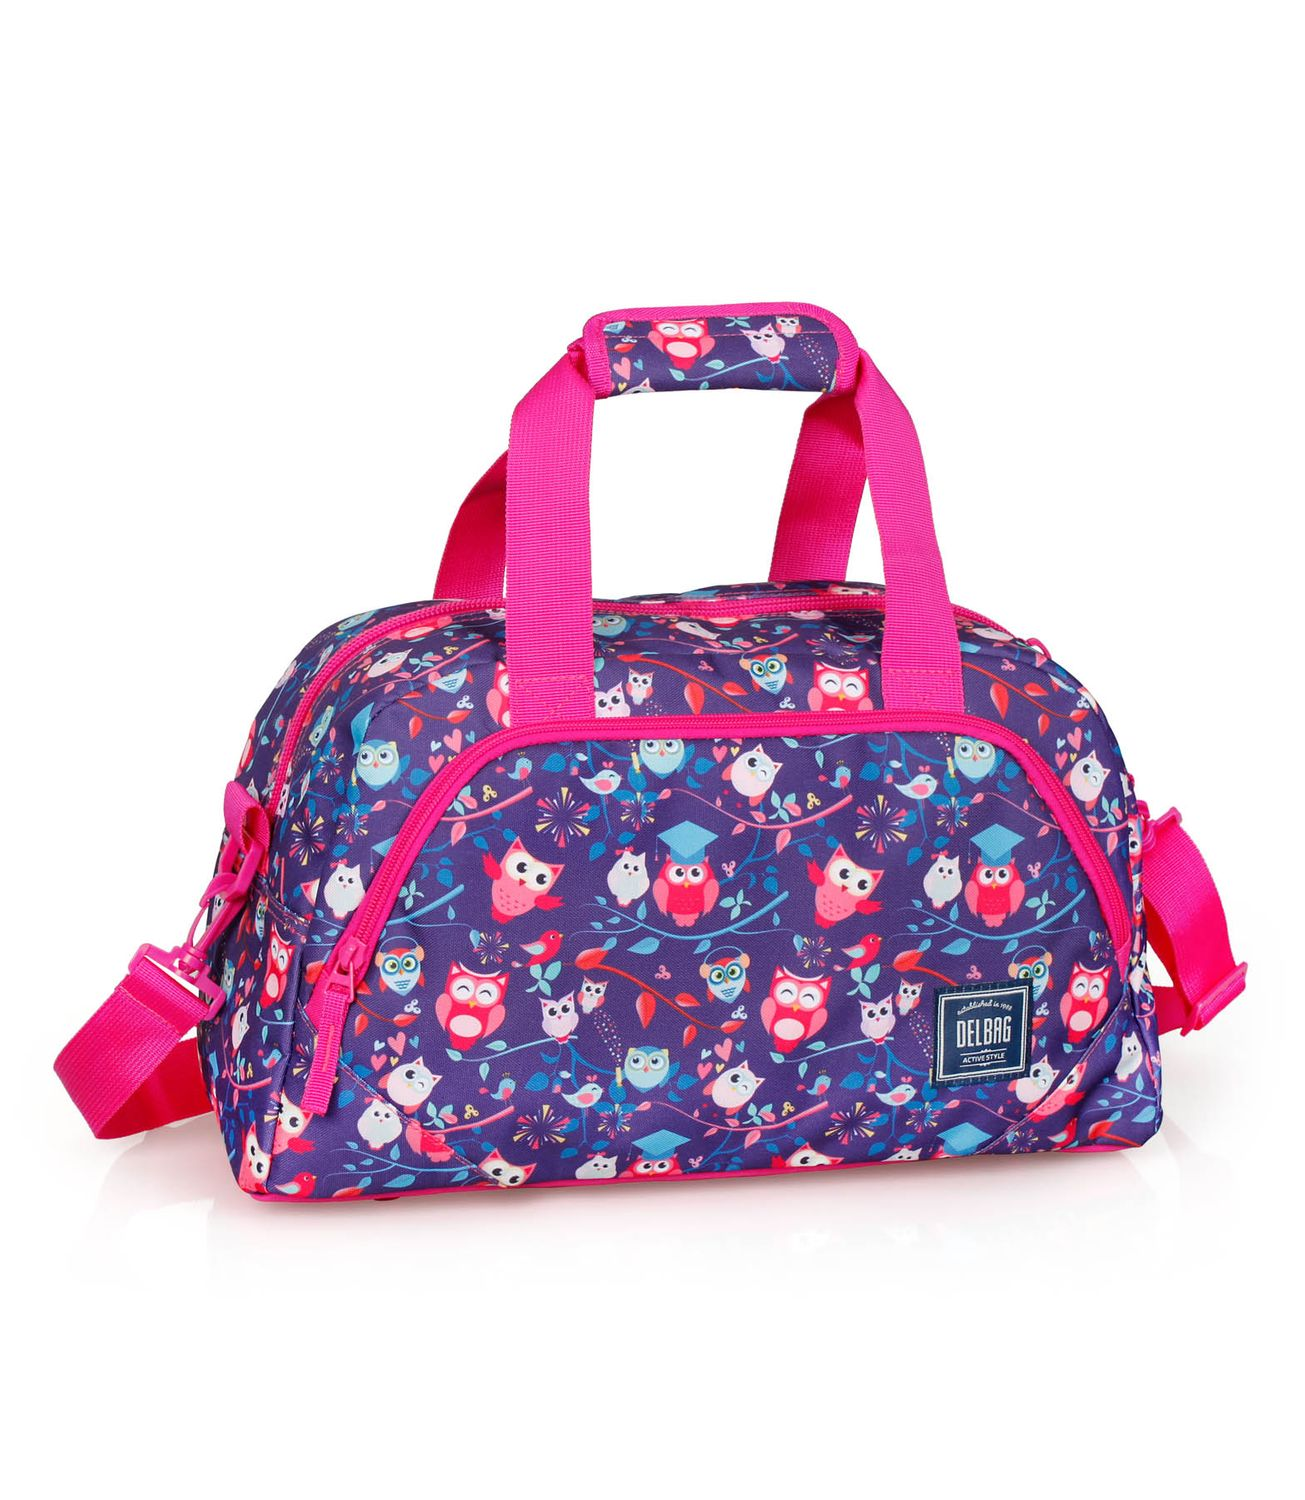 Holdall Travel Bag PINK OWLS – image 1